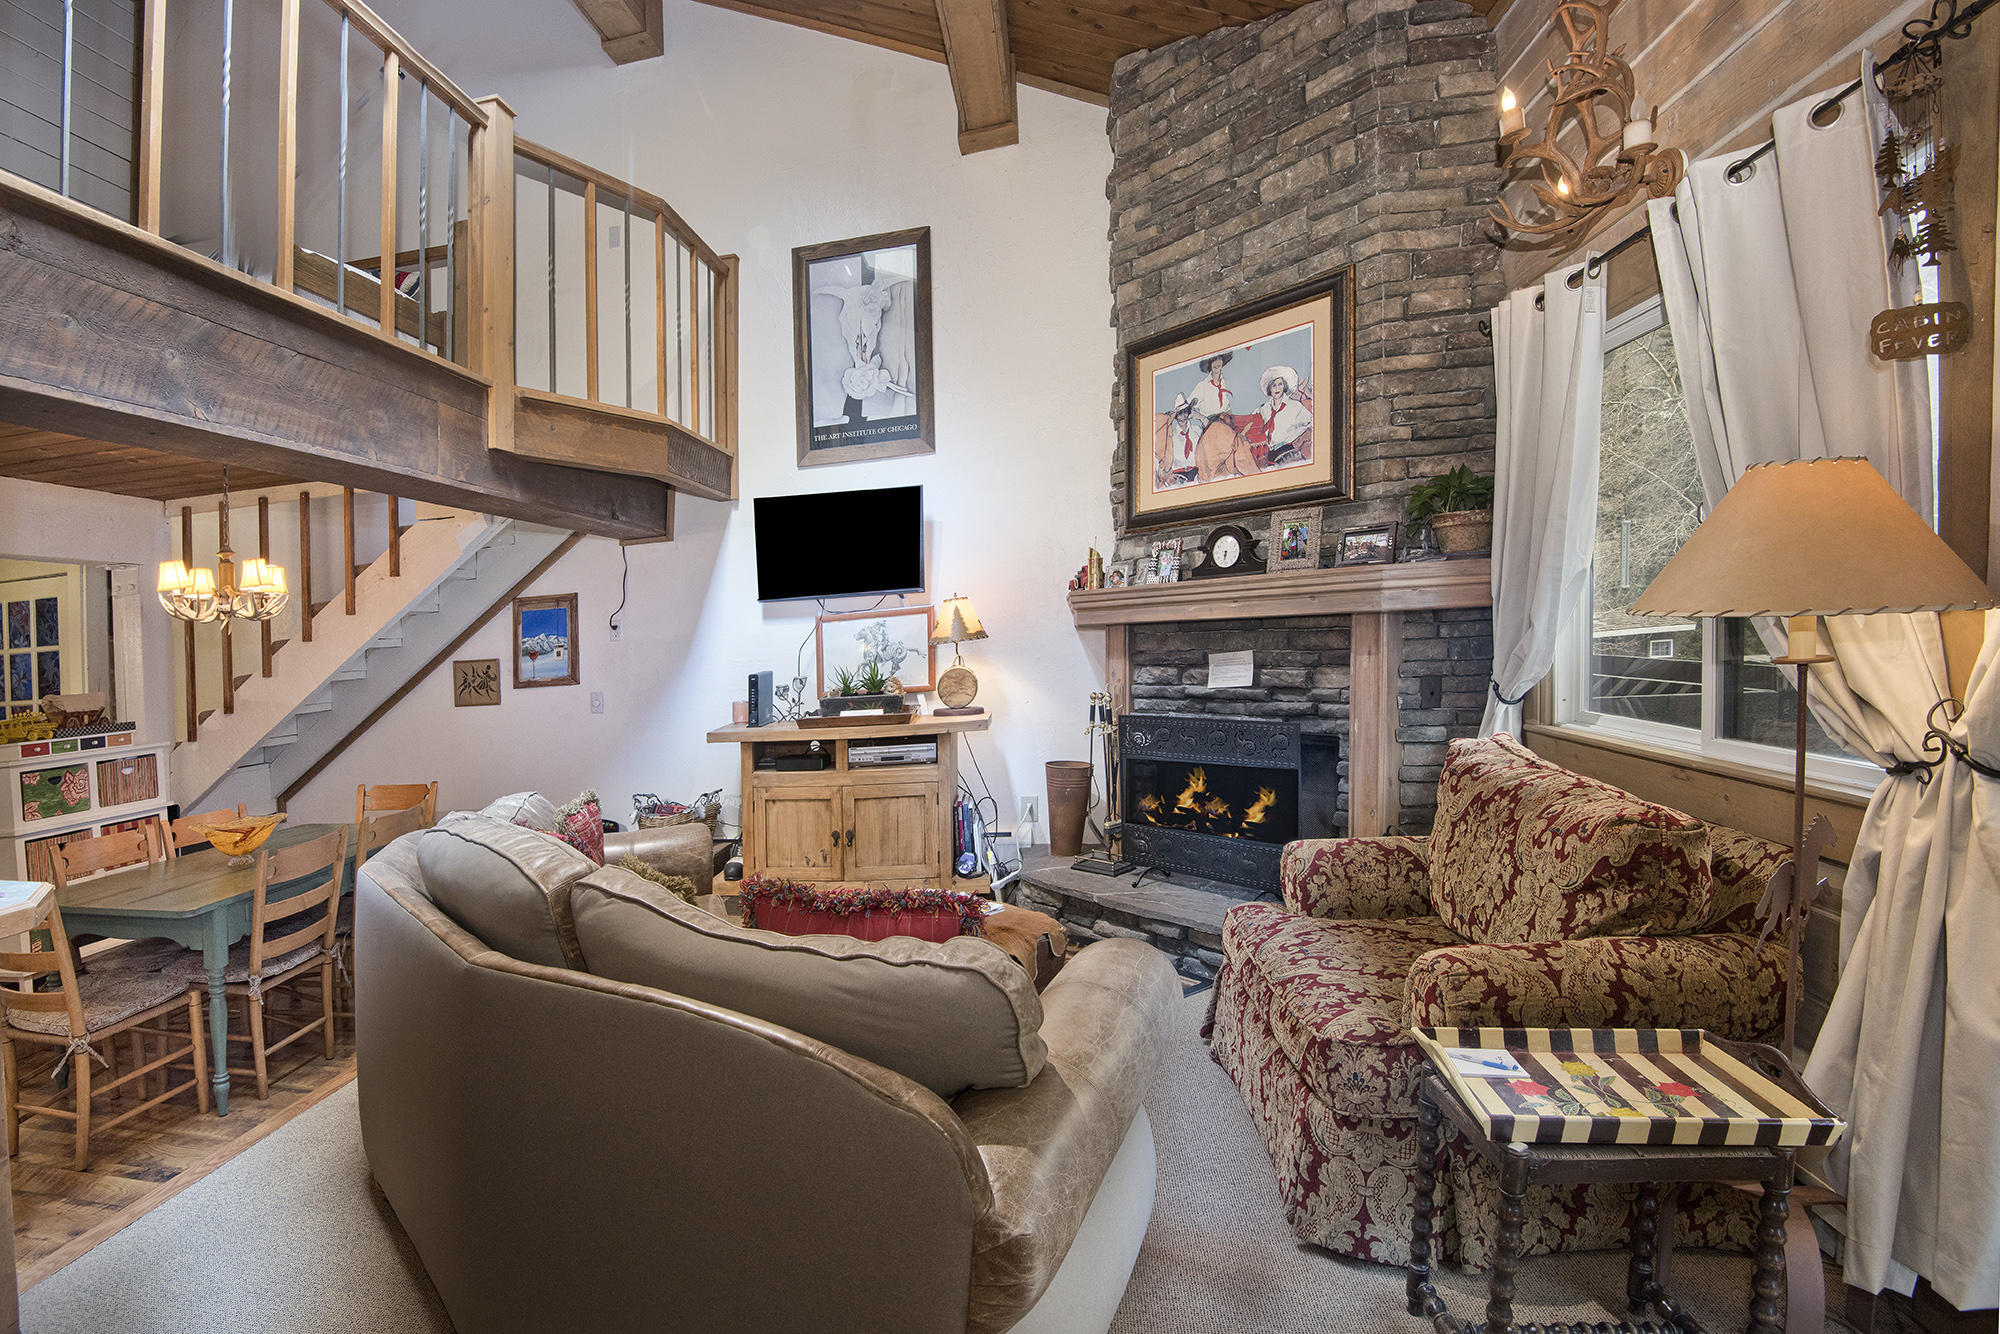 IMMACULATE, Upgraded 3 bed, 2 bath, expands two levels, 1324 sq. ft. Unit comes tastefully furnished with warm, Mountain decor, TURN KEY. Interlochen Condos are located adjacent to Gore Creek, ON the free bus route to the VAIL ski slopes right outside your front door! HOA dues include heat, cable, and WI-FI. Recently renovated Log Construction, new windows and doors, vaulted ceilings, this is a MUST SEE! Welcome to Vail.